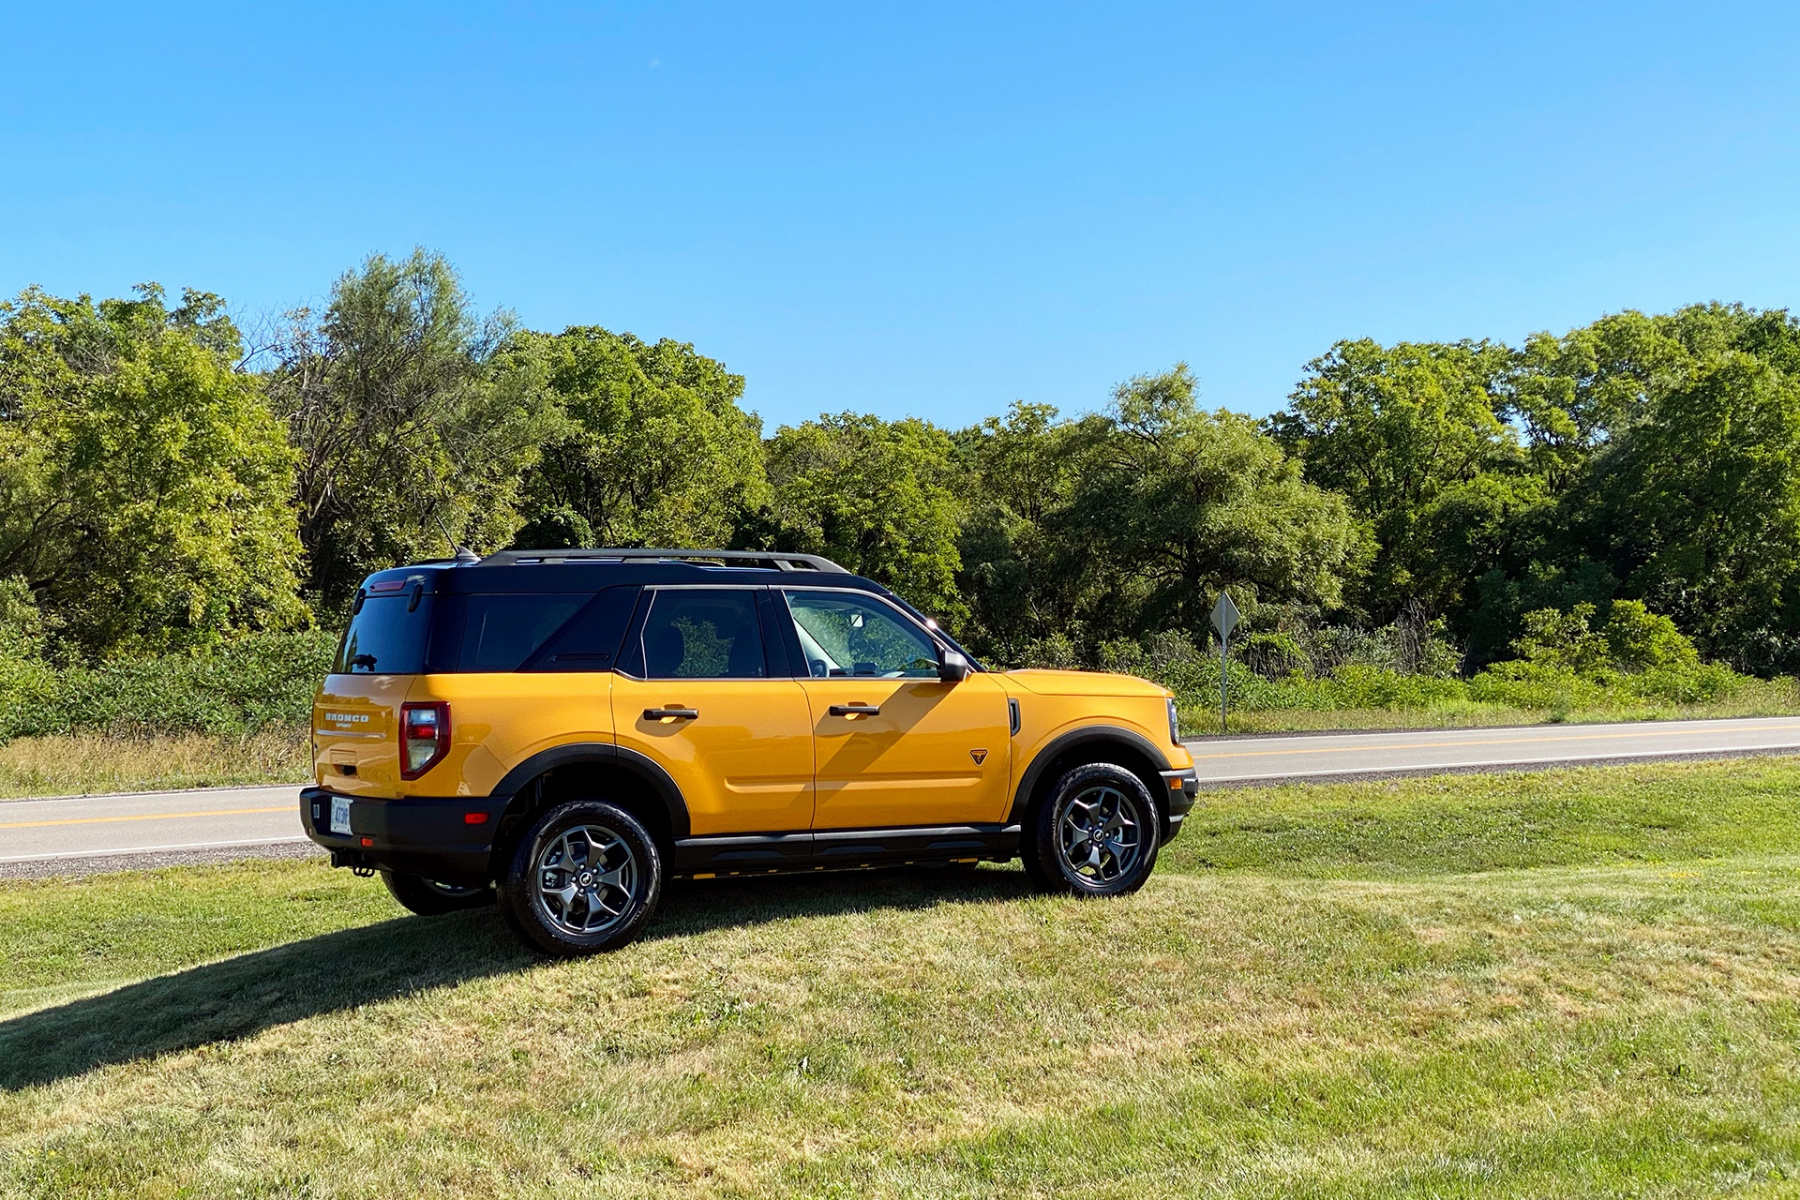 2021 Ford Bronco Sport Preview 5 Things We Learned About The Baby Bronco Autoguide Com News